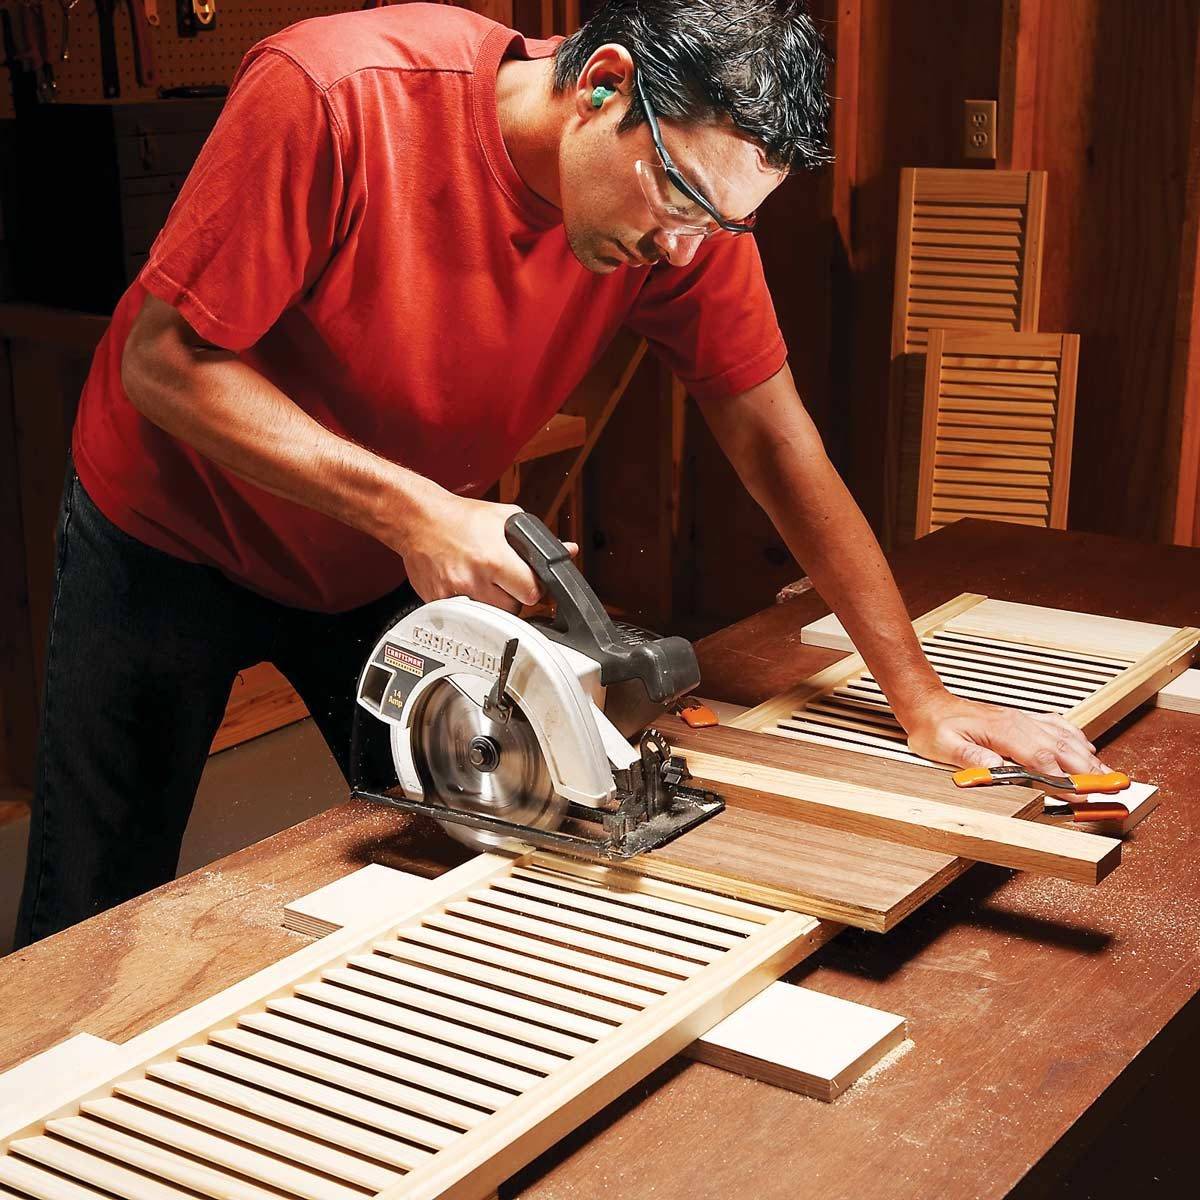 FH07OCT_482_56_008 cut cabinet doors